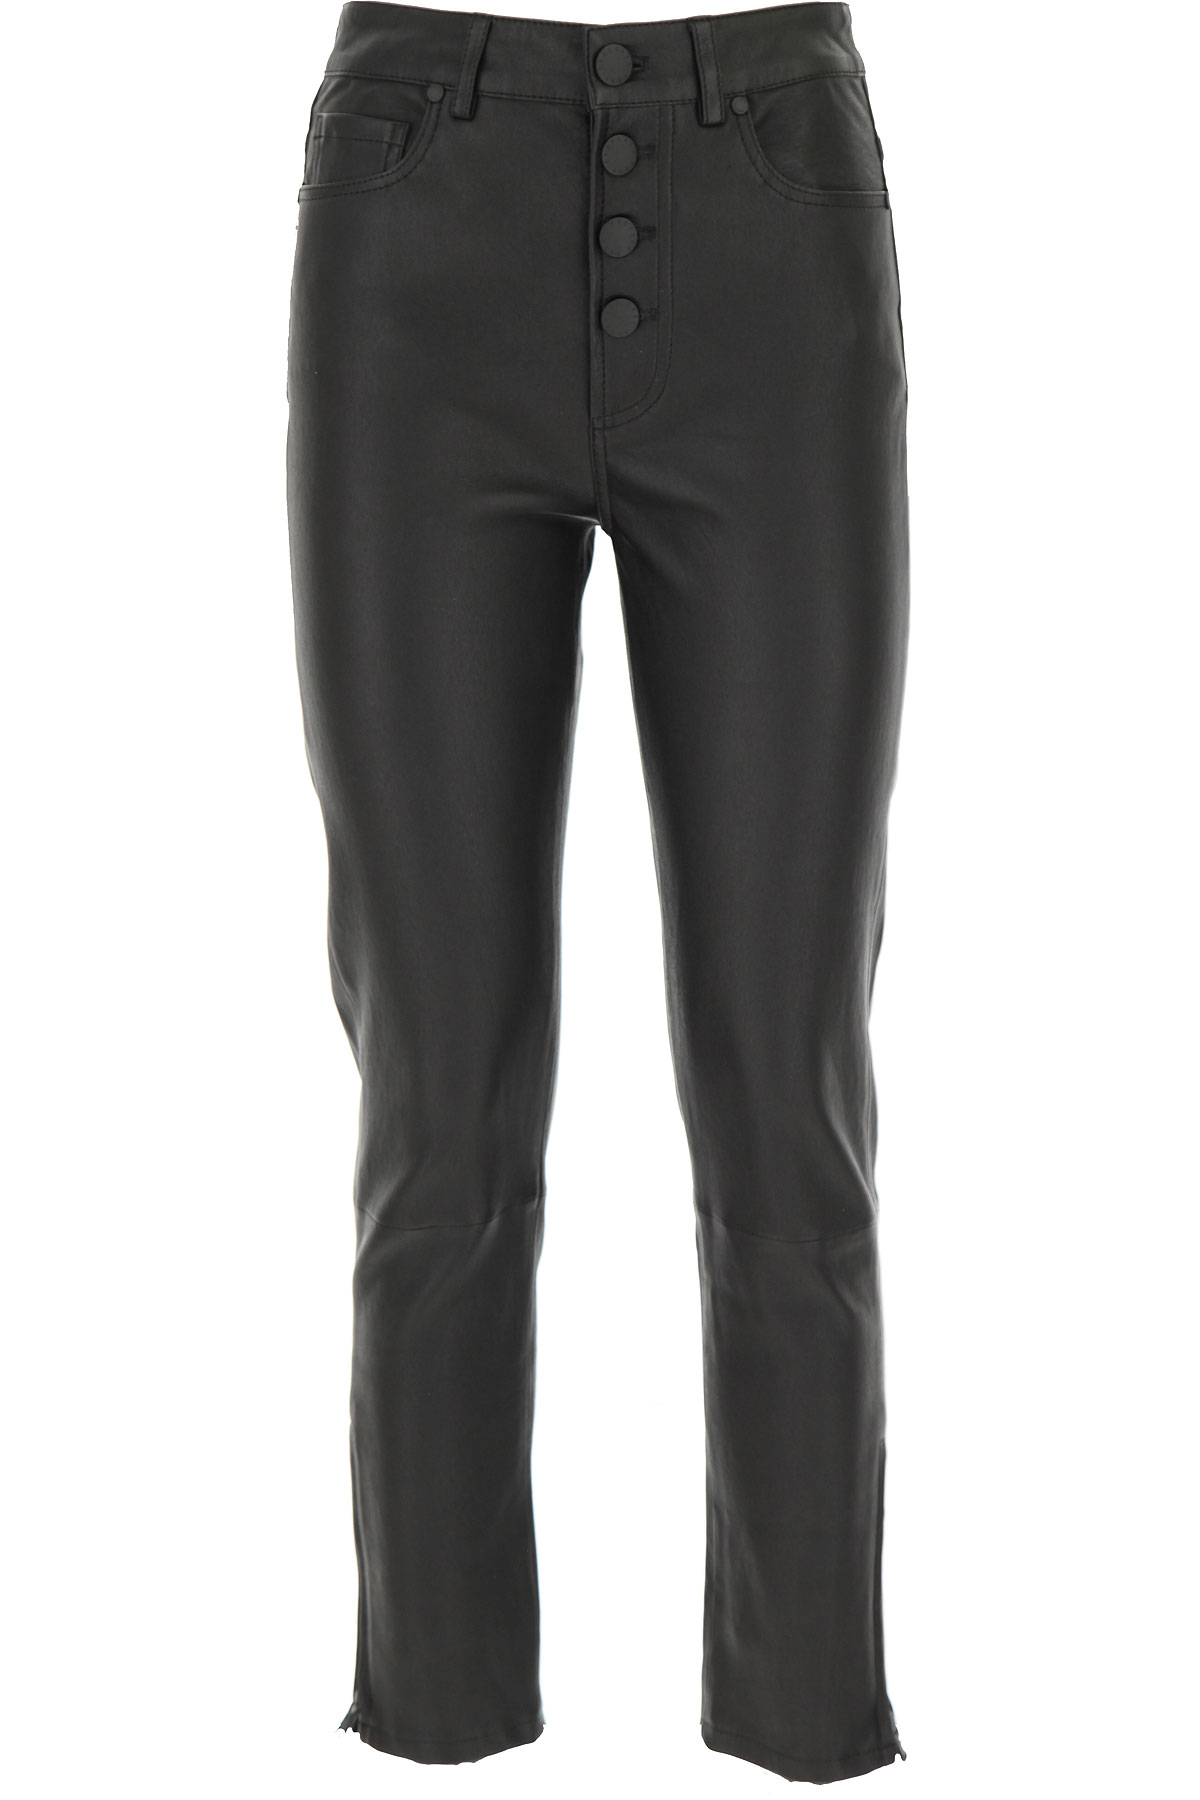 Federica Tosi Pants for Women On Sale, Black, Leather, 2019, 24 26 28